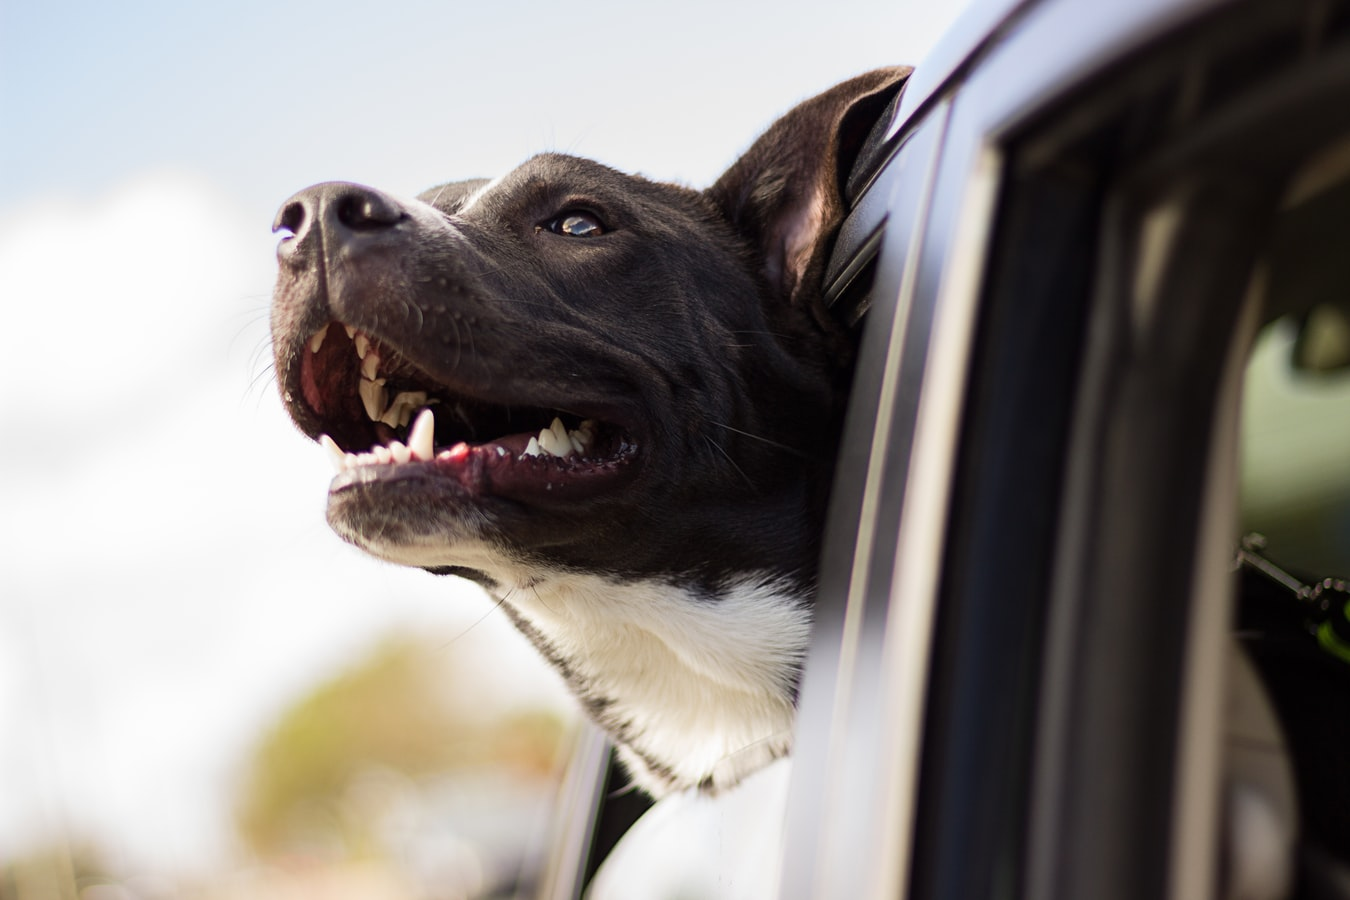 A large brown dog sticks their head out of the window of a car